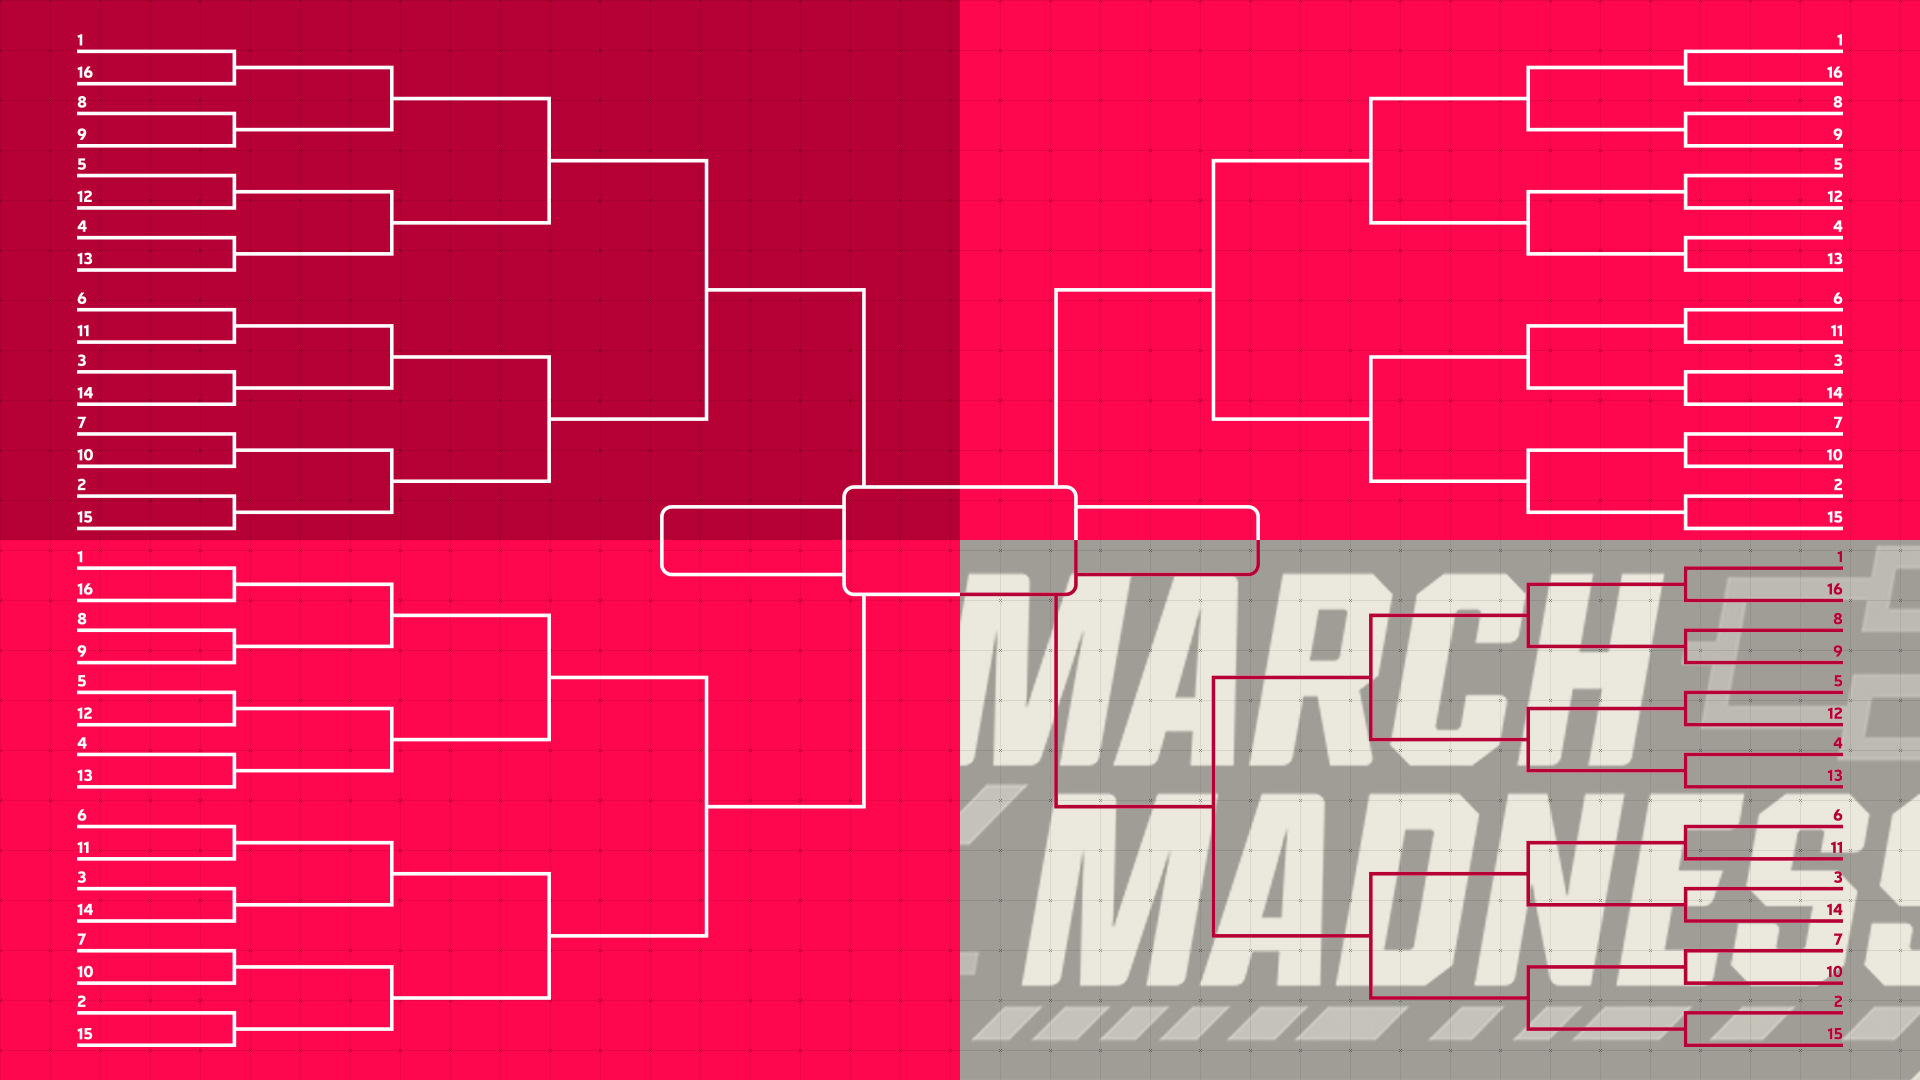 March Madness schedule today: Times, channels, scores for Friday's Round 1 NCAA Tournament games